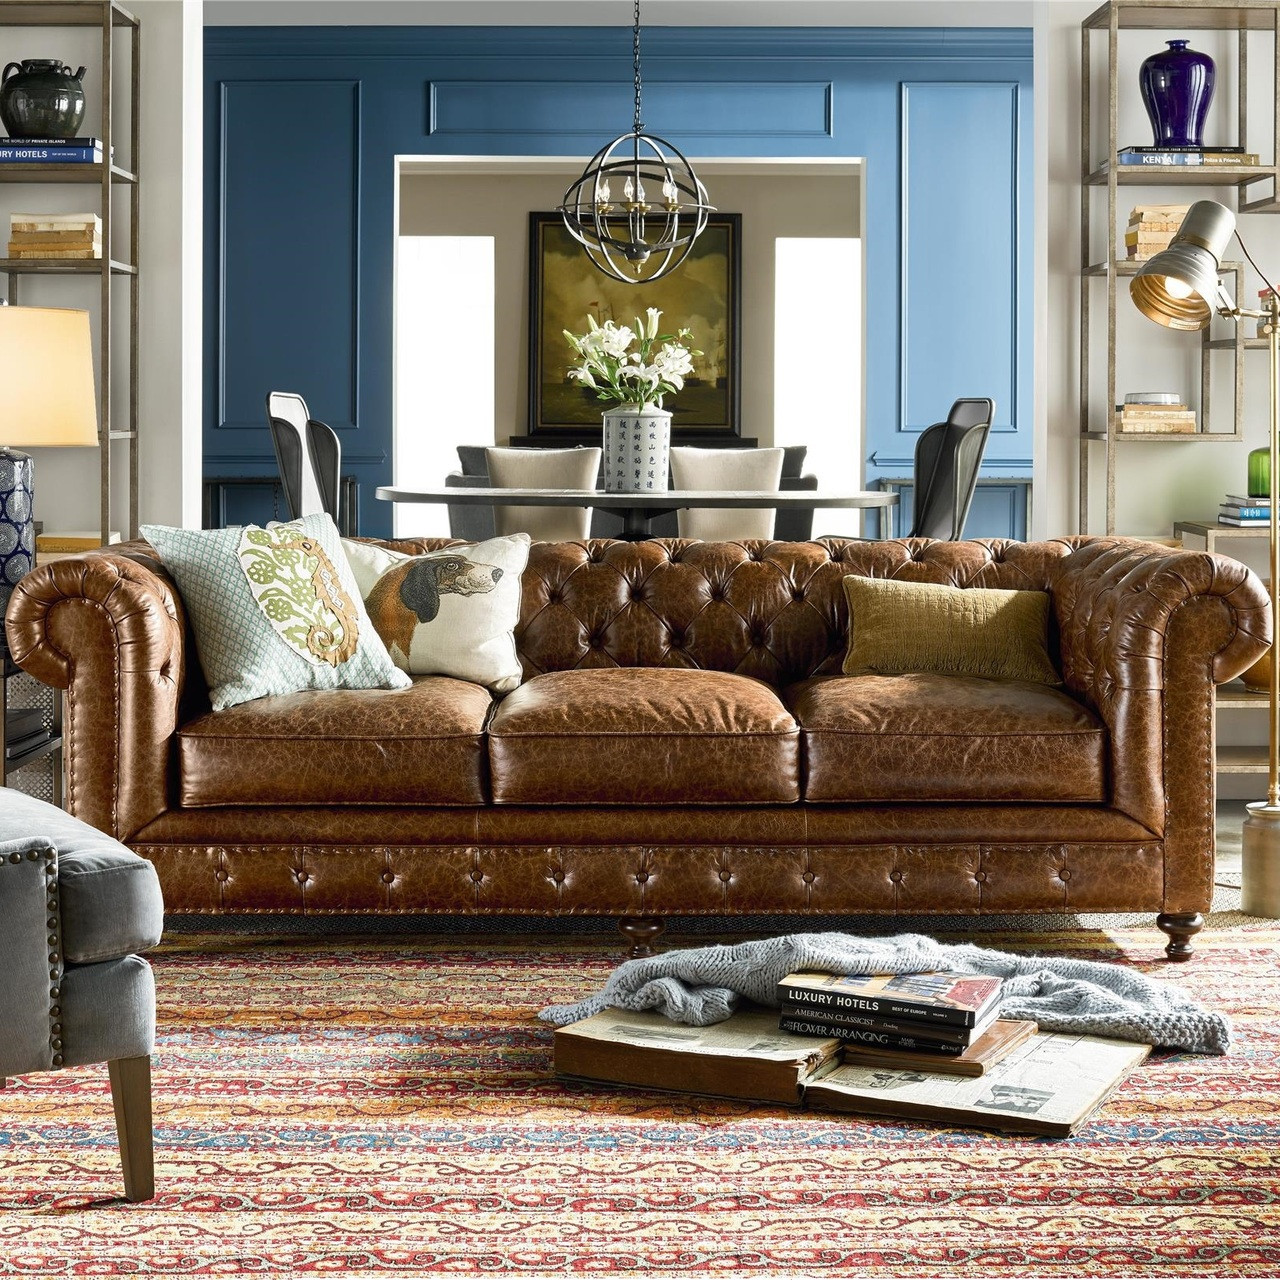 - Chesterfield Sofa And Coffee Table – Caseconrad.com